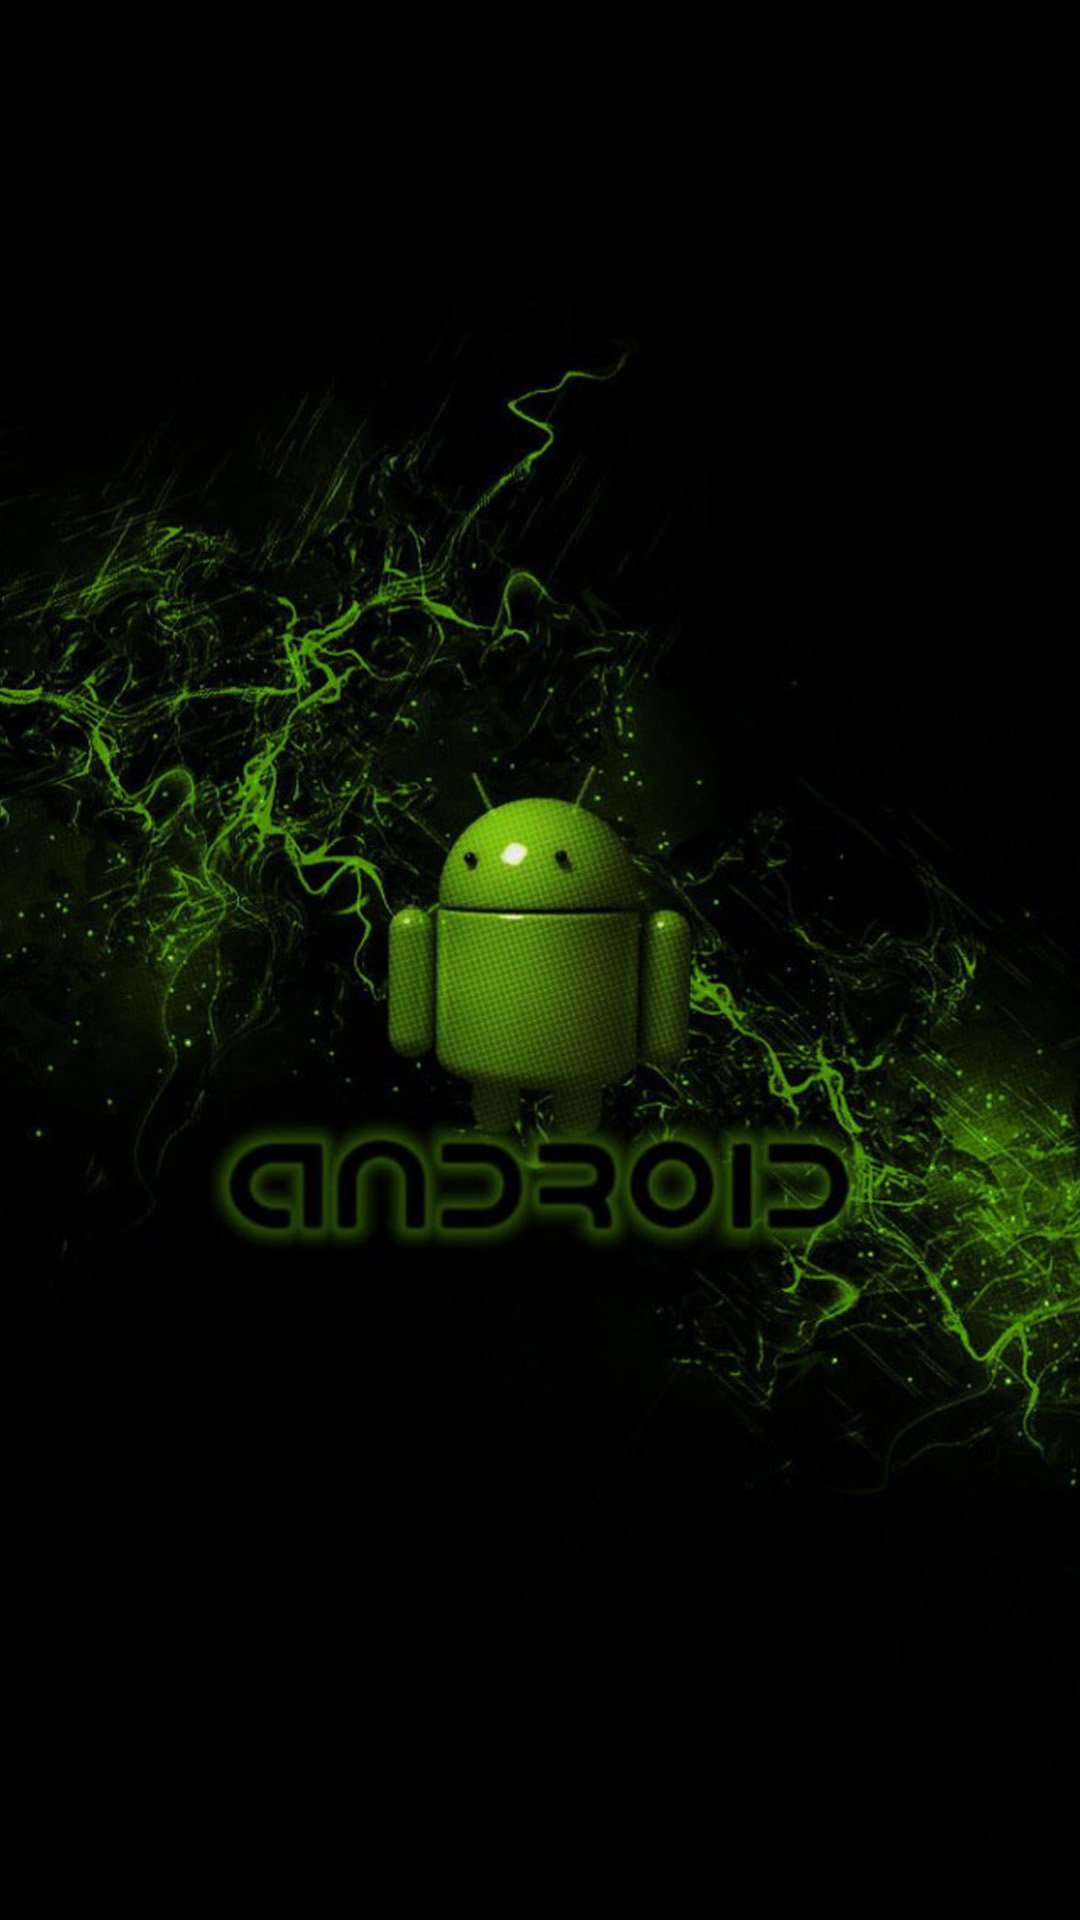 Android logo wallpaper wallpapersafari - Wallpapers android hd ...